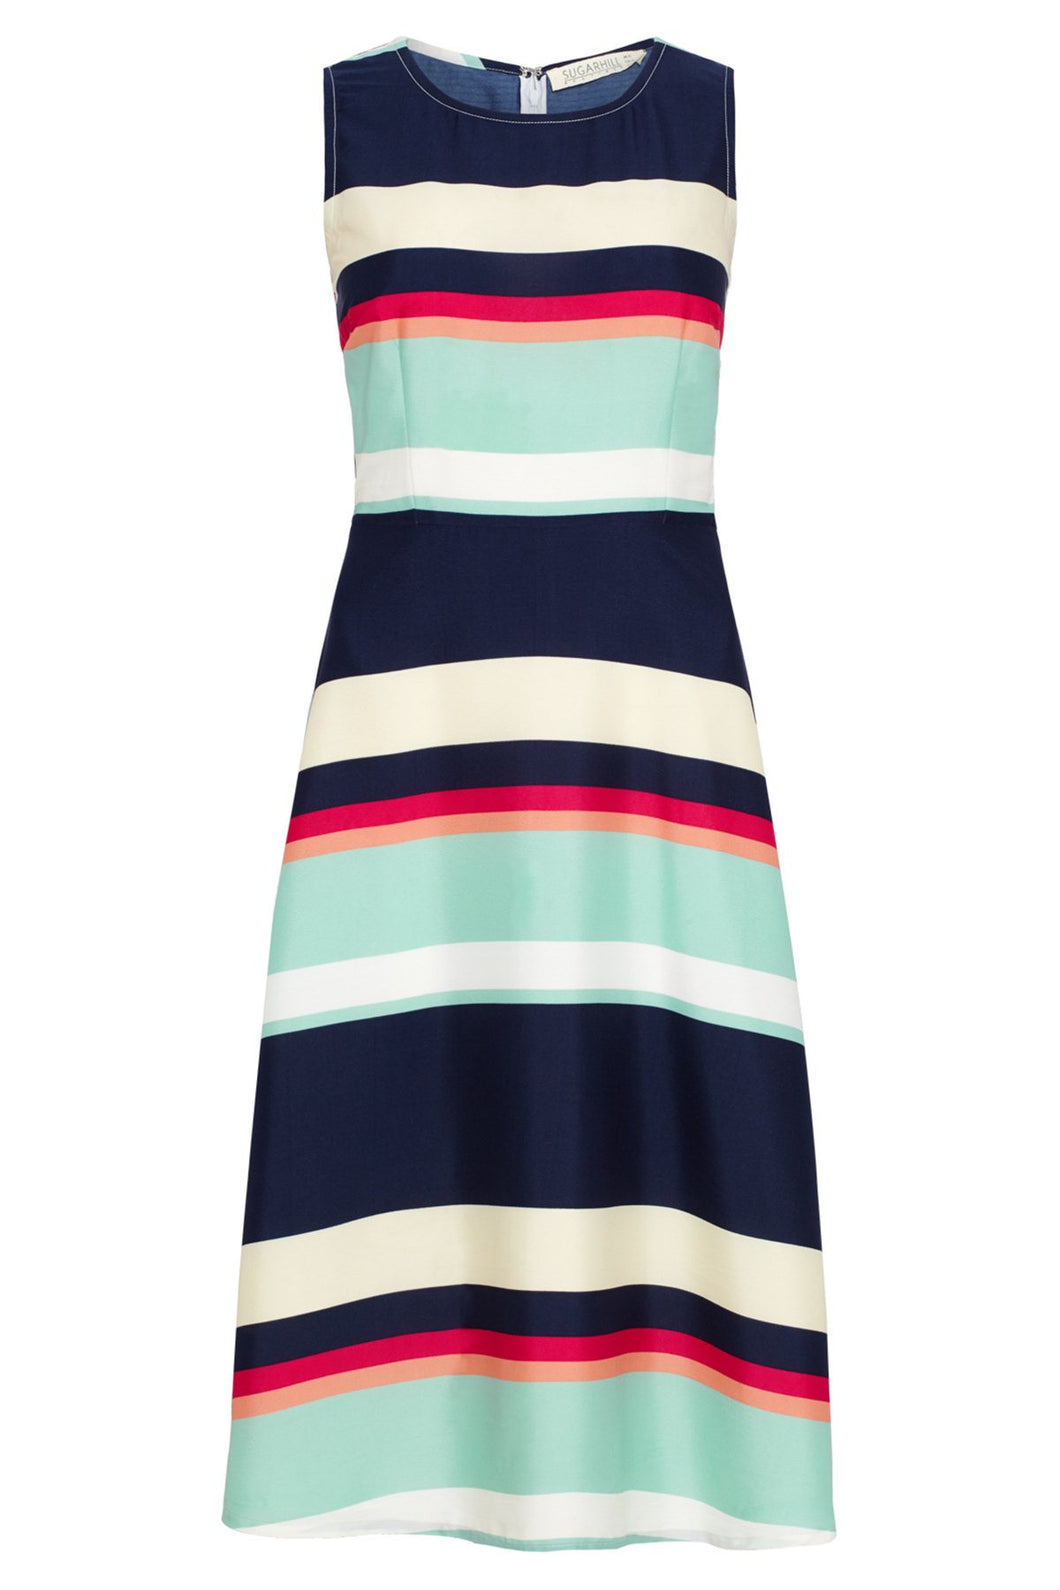 Sugarhill Boutique Striped Midi Liza Dress